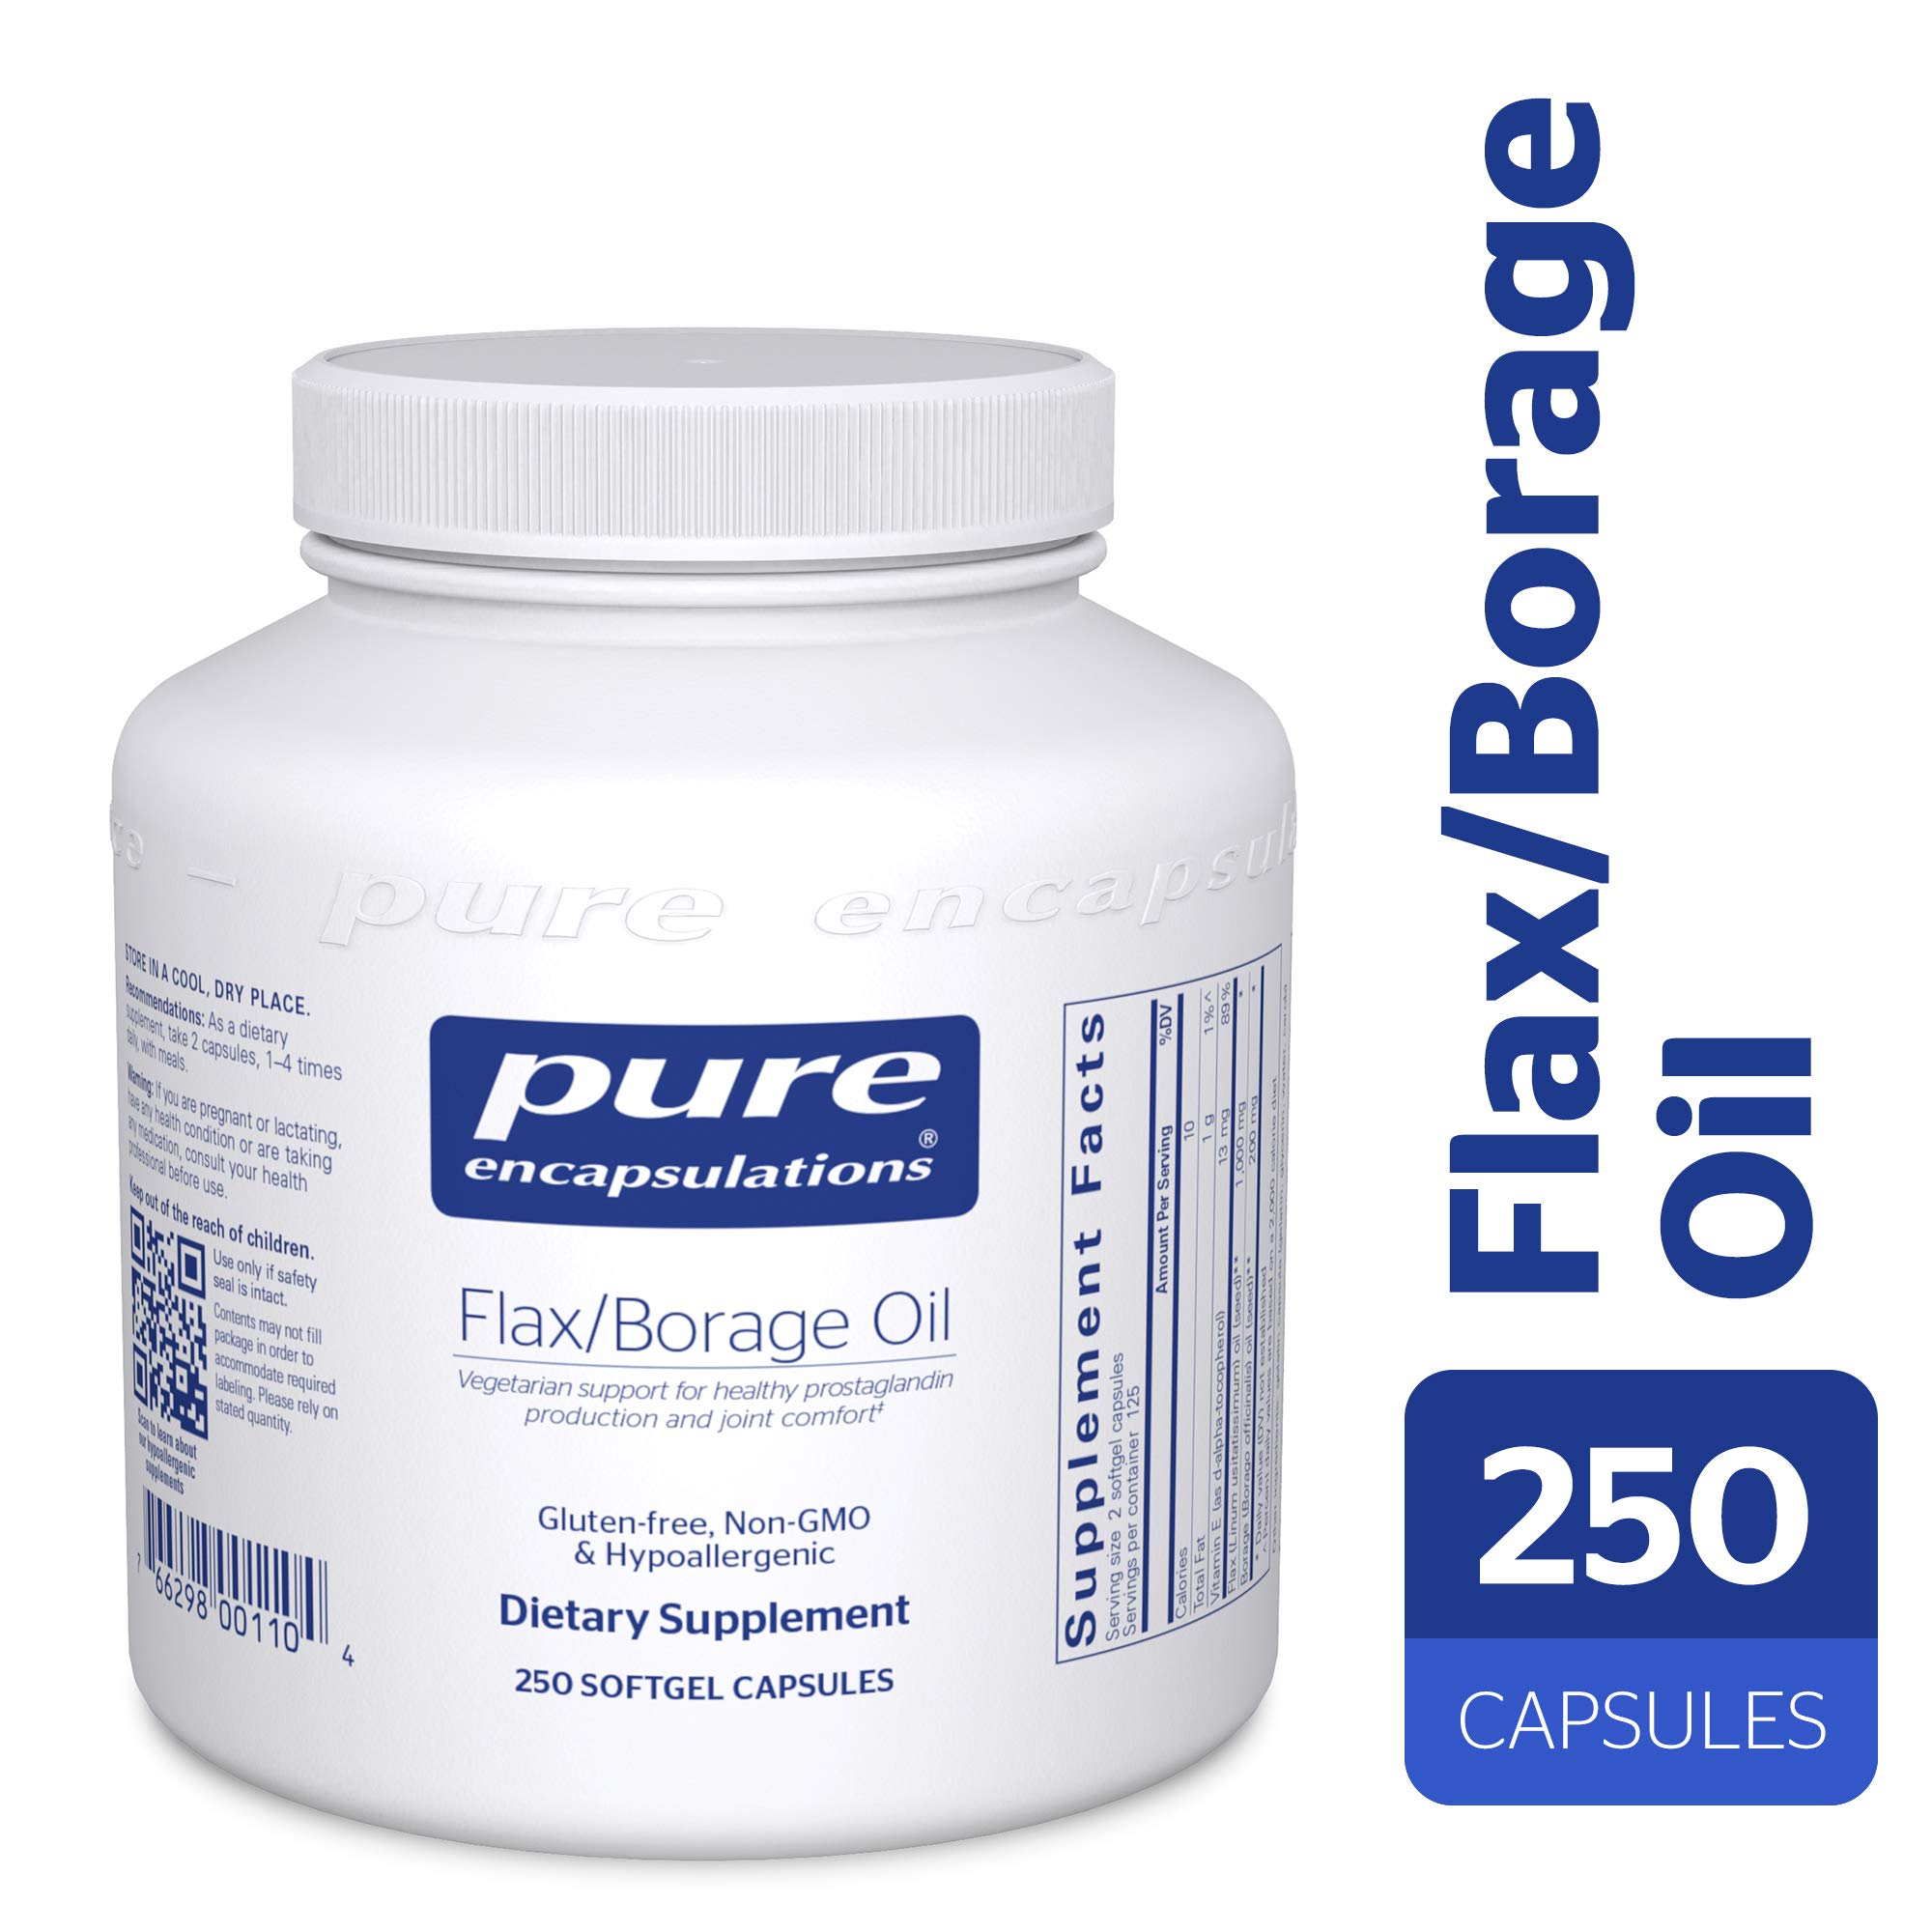 Pure Encapsulations - Flax/Borage Oil - Hypoallergenic Supplement Containing 50% Omega-3 and 22% GLA - 250 Softgel Capsules by Pure Encapsulations